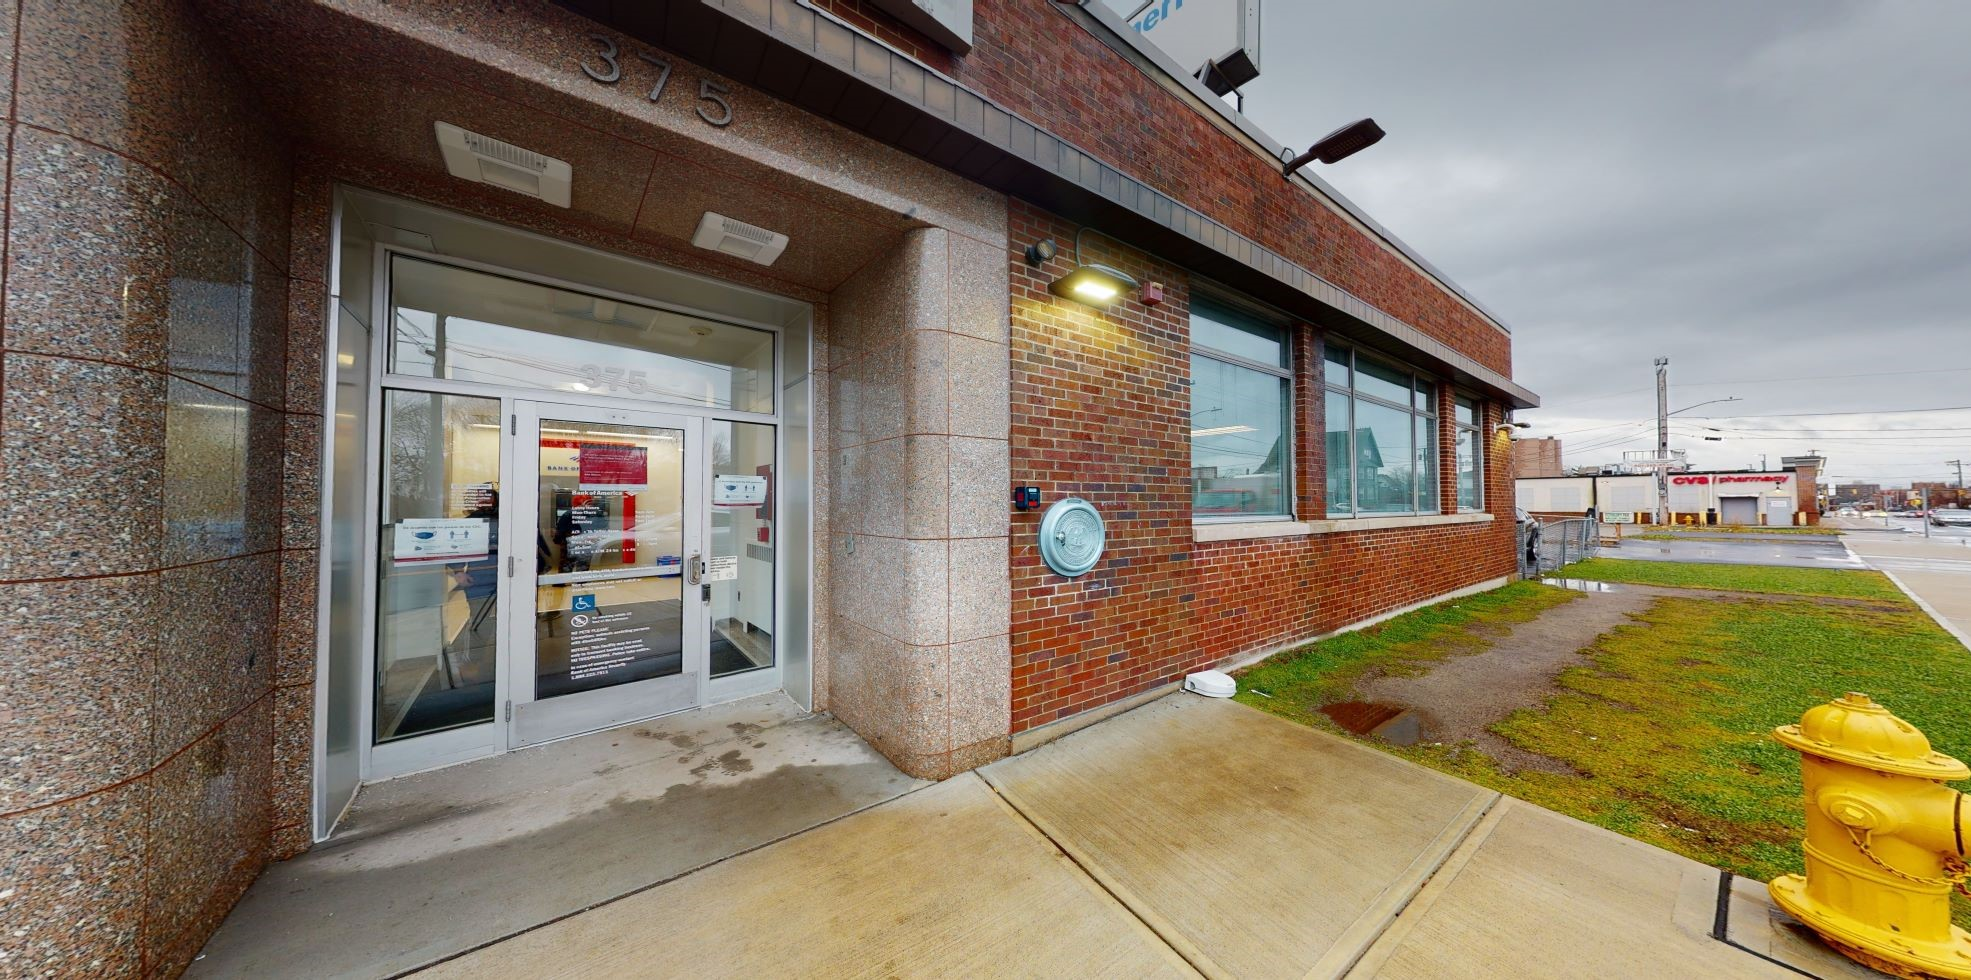 Bank of America financial center with drive-thru ATM   375 Broad St, Central Falls, RI 02863